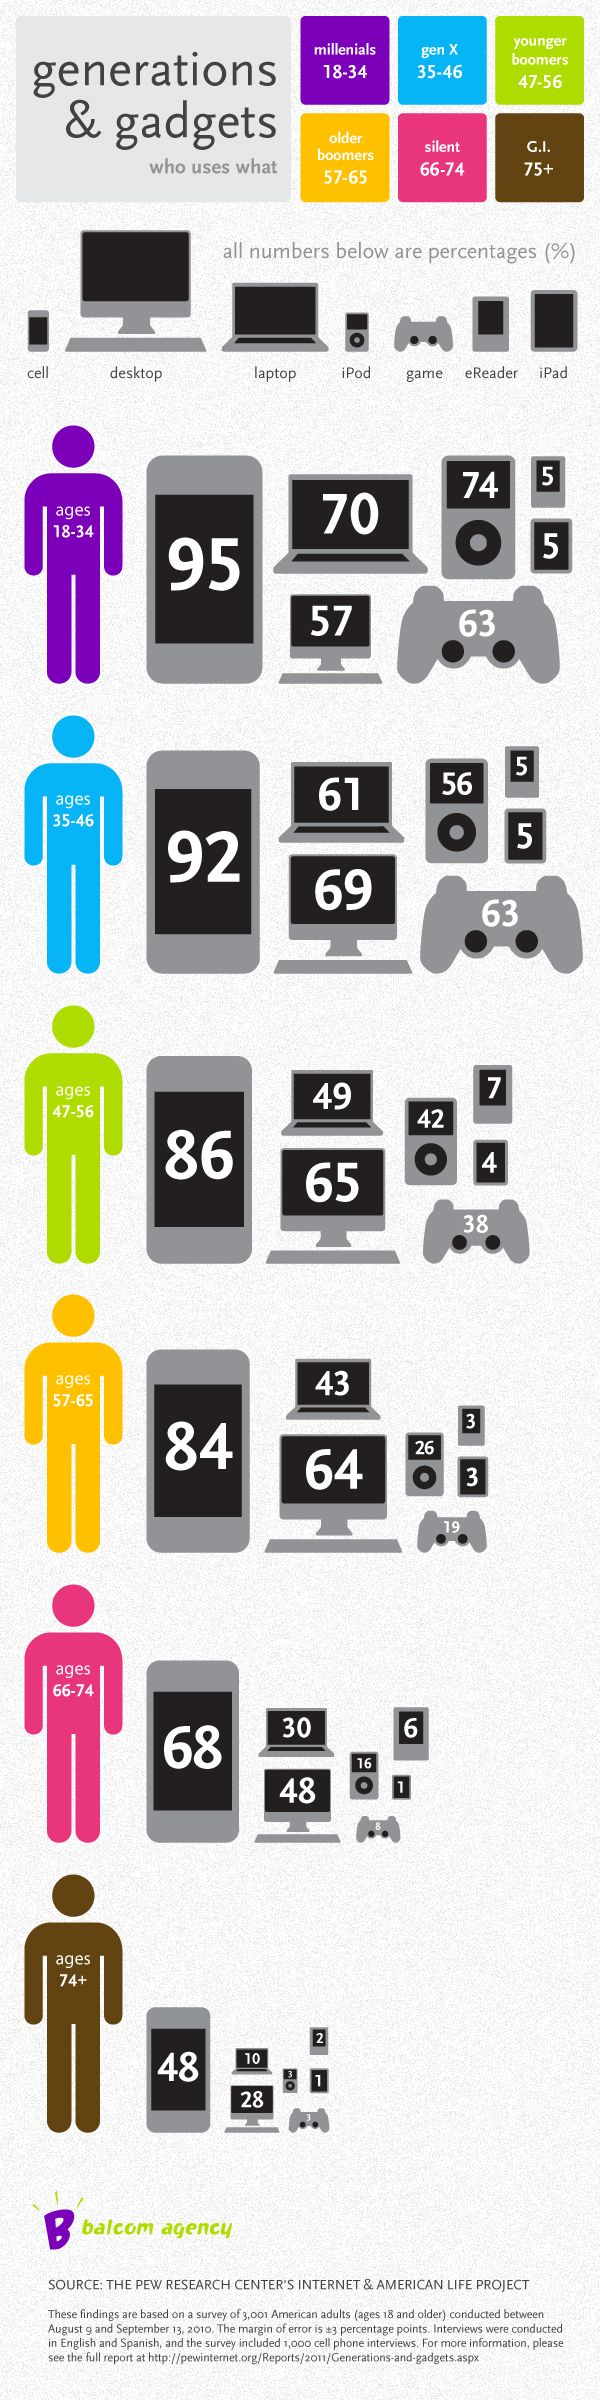 An infographic depicting what generations own what percentage of technology gadgets.